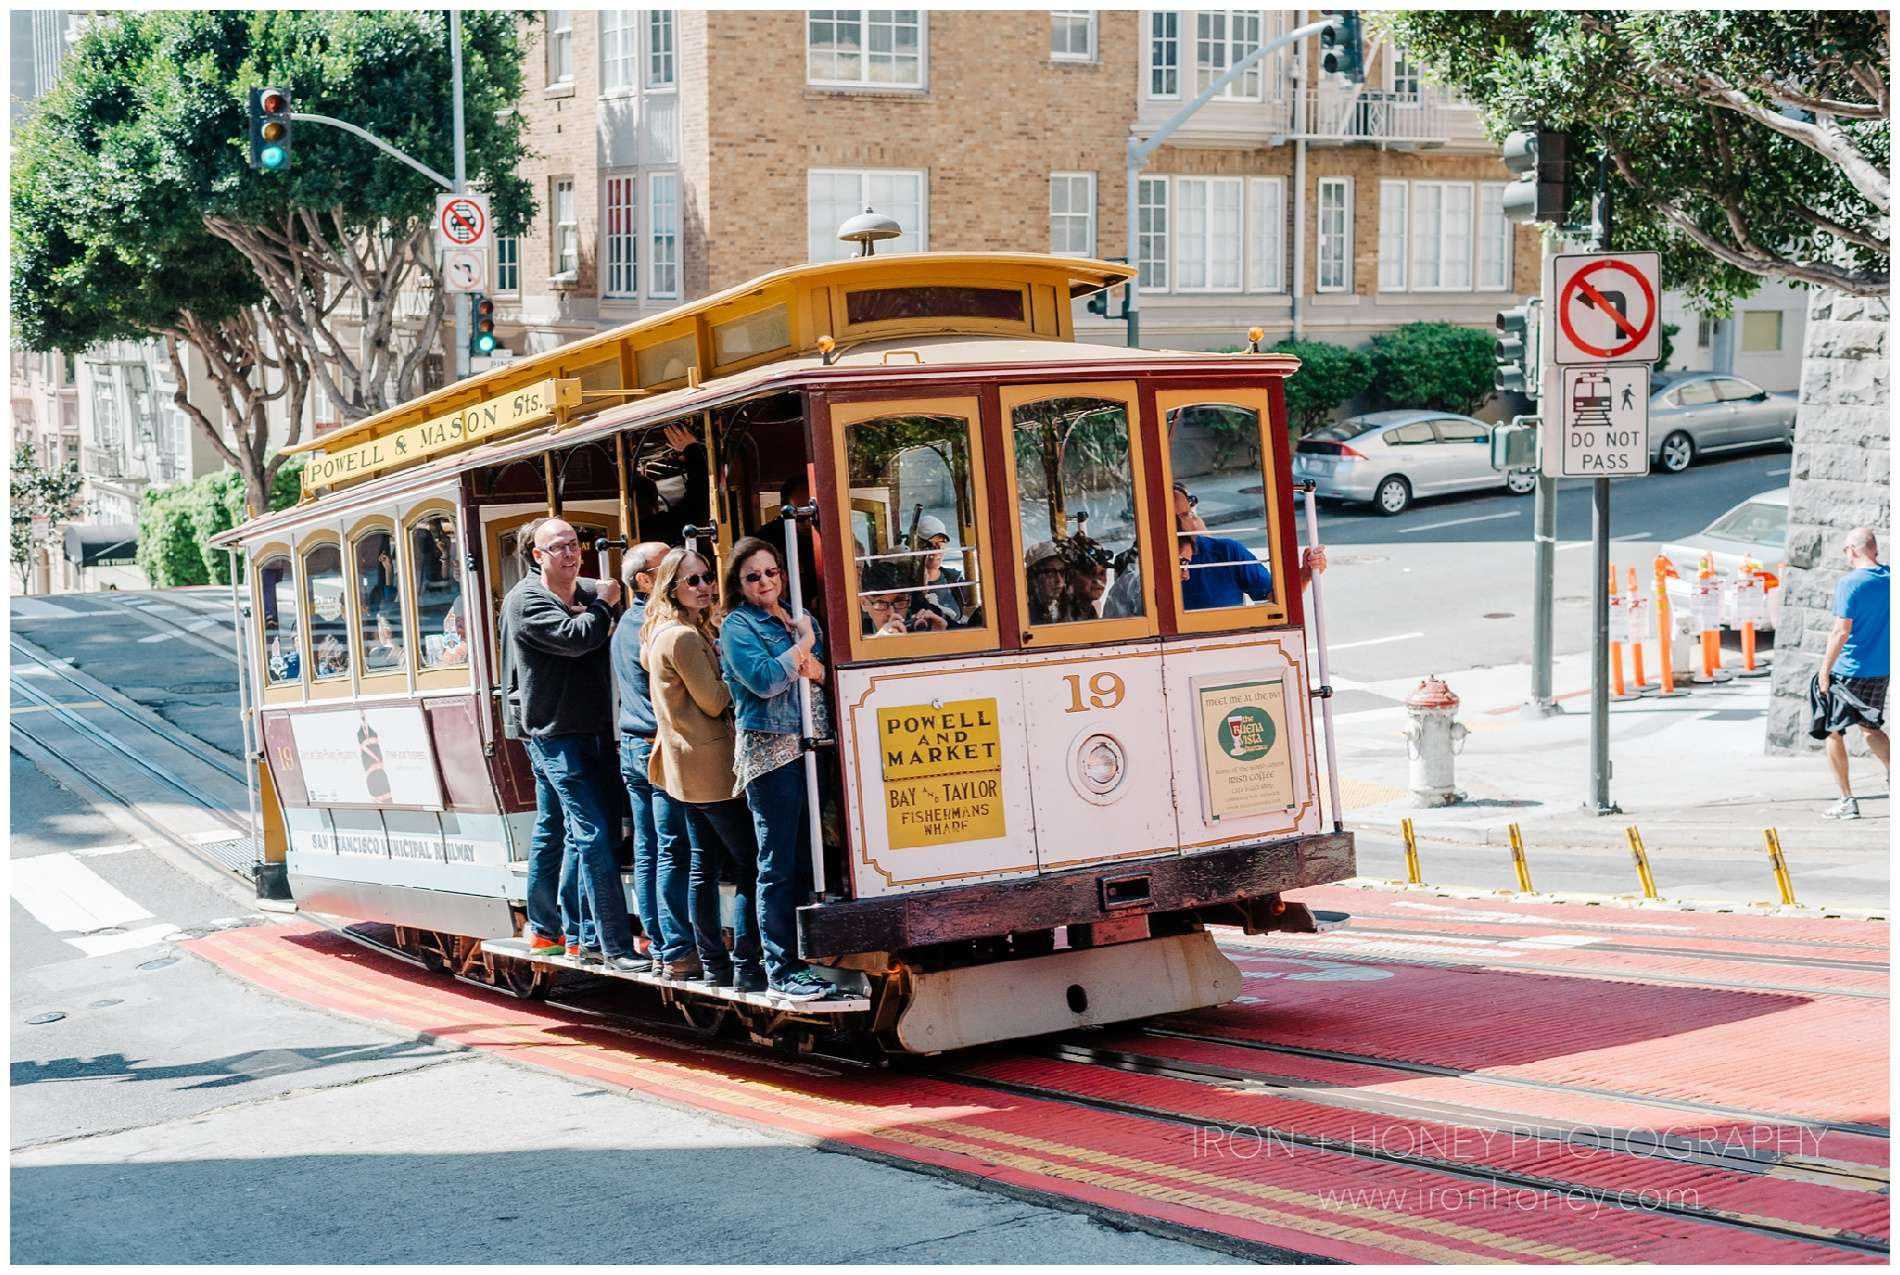 san francisco, berkeley, oakland, california, travel, photography, photographer, chicago, mr holmes bakehouse, golden gate bridge, painted ladies, trolley, cable car, fairmont,